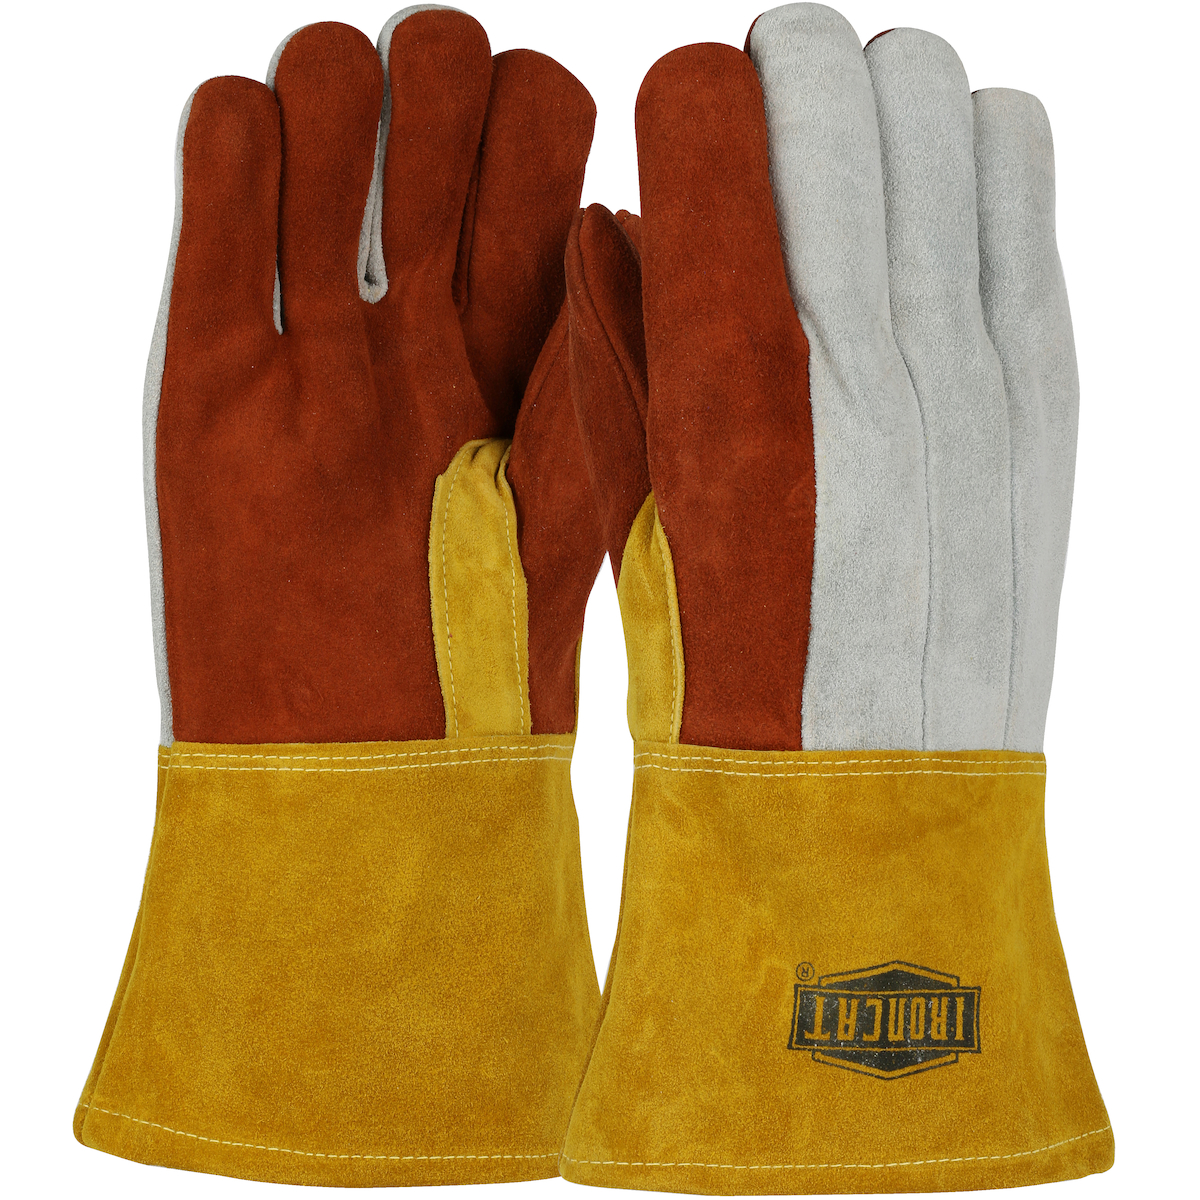 Premium Heavy Split Cowhide Foundry Glove with Cotton Lining and Kevlar® Stitching - Leather Gauntlet Cuff, Rust, L